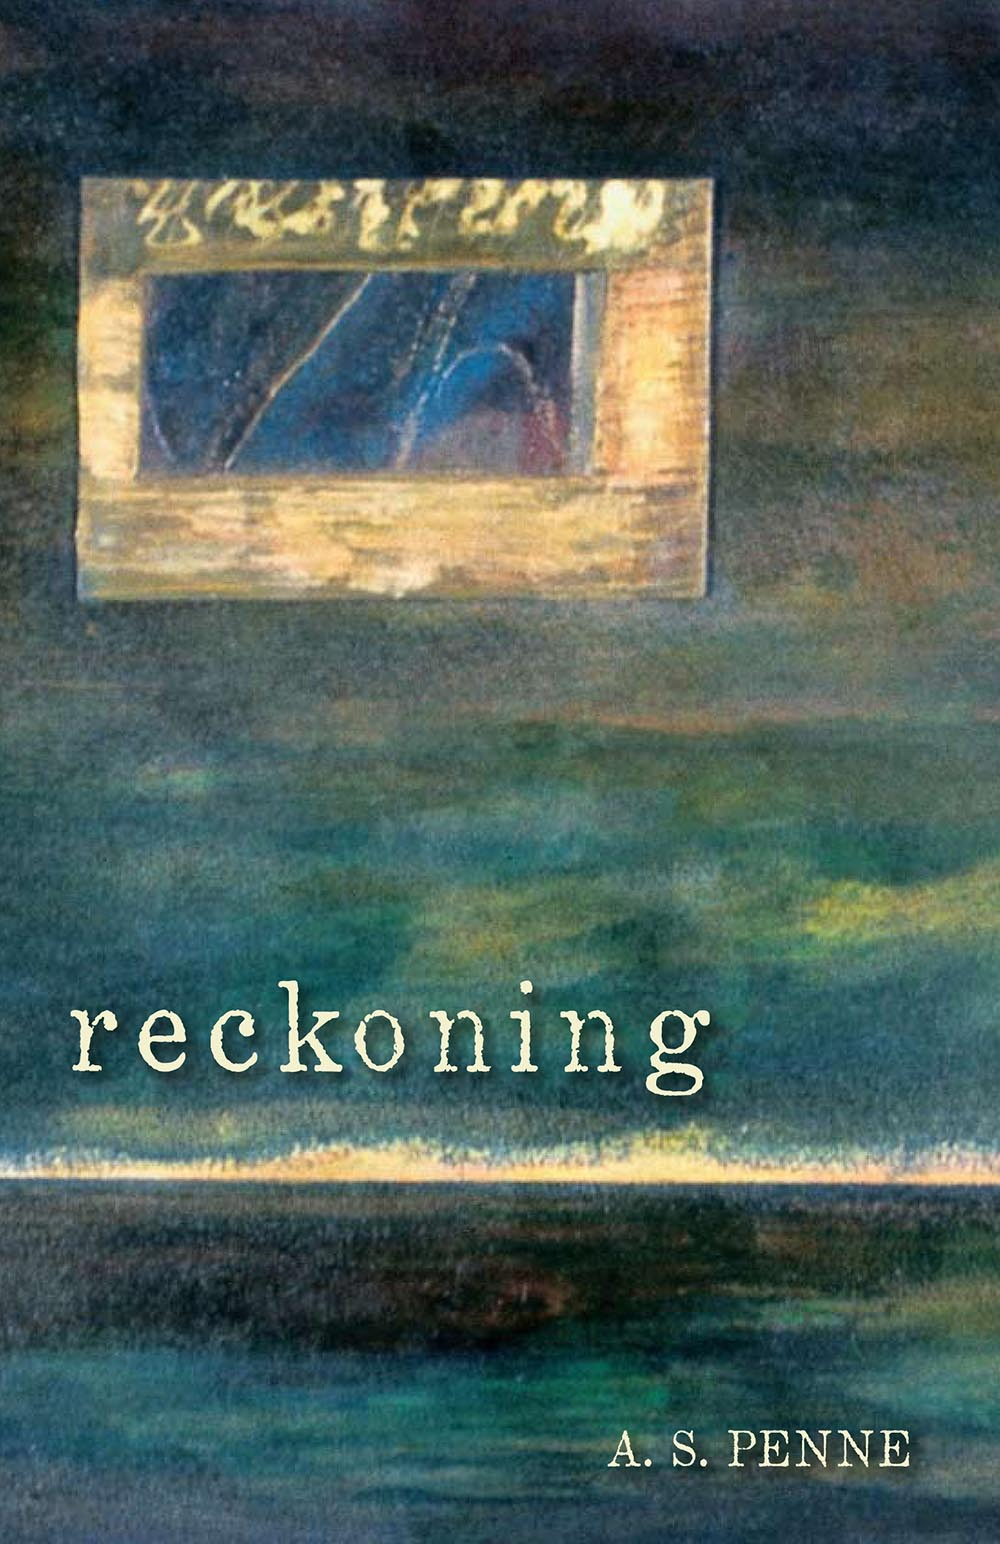 Reckoning by A. S. Penne